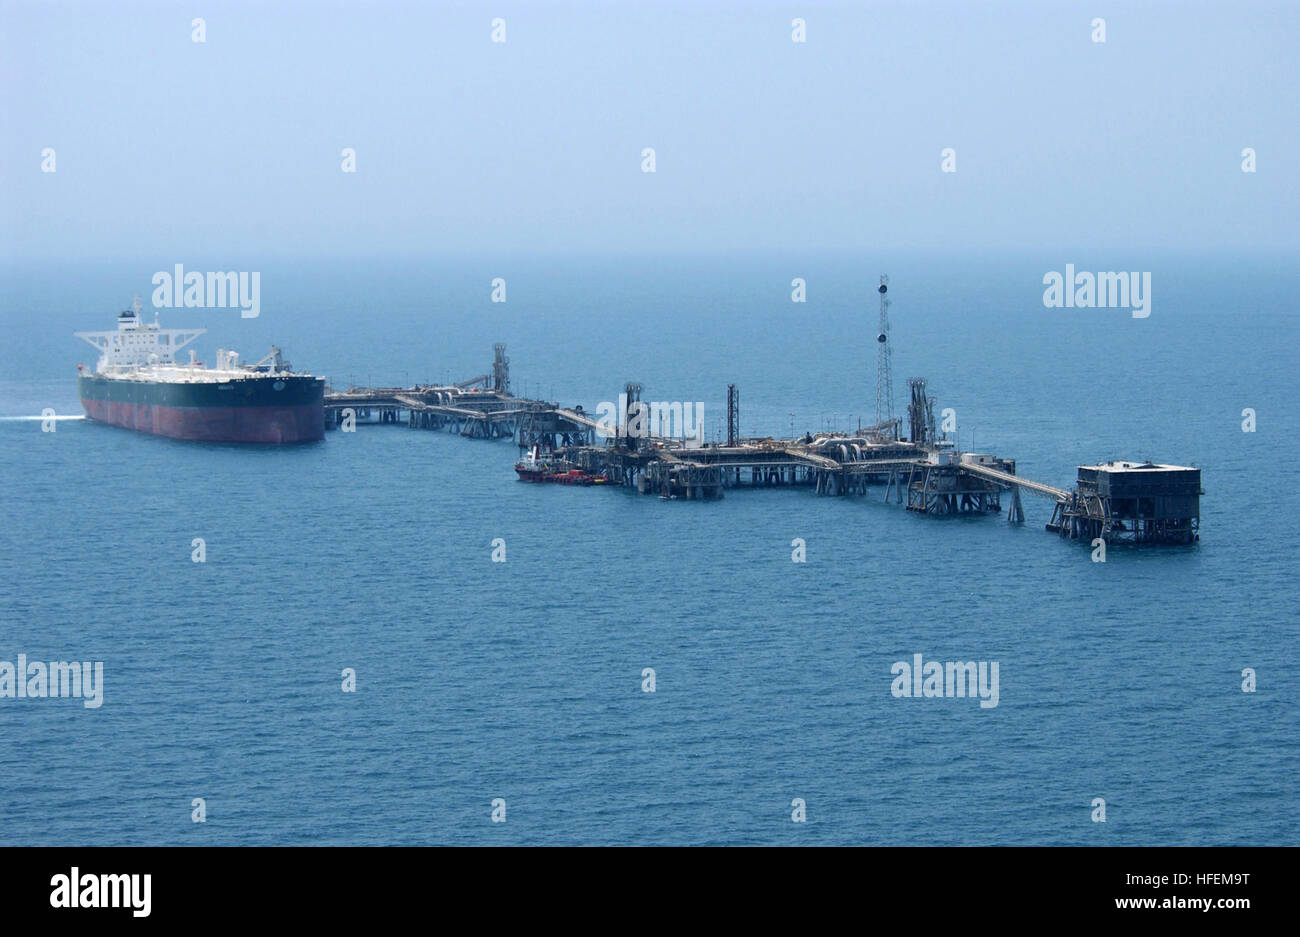 030629-N-4790M-006 Central Command Area of Responsibility (Jun. 29, 2003) -- Commercial oil tanker AbQaiq readies - Stock Image